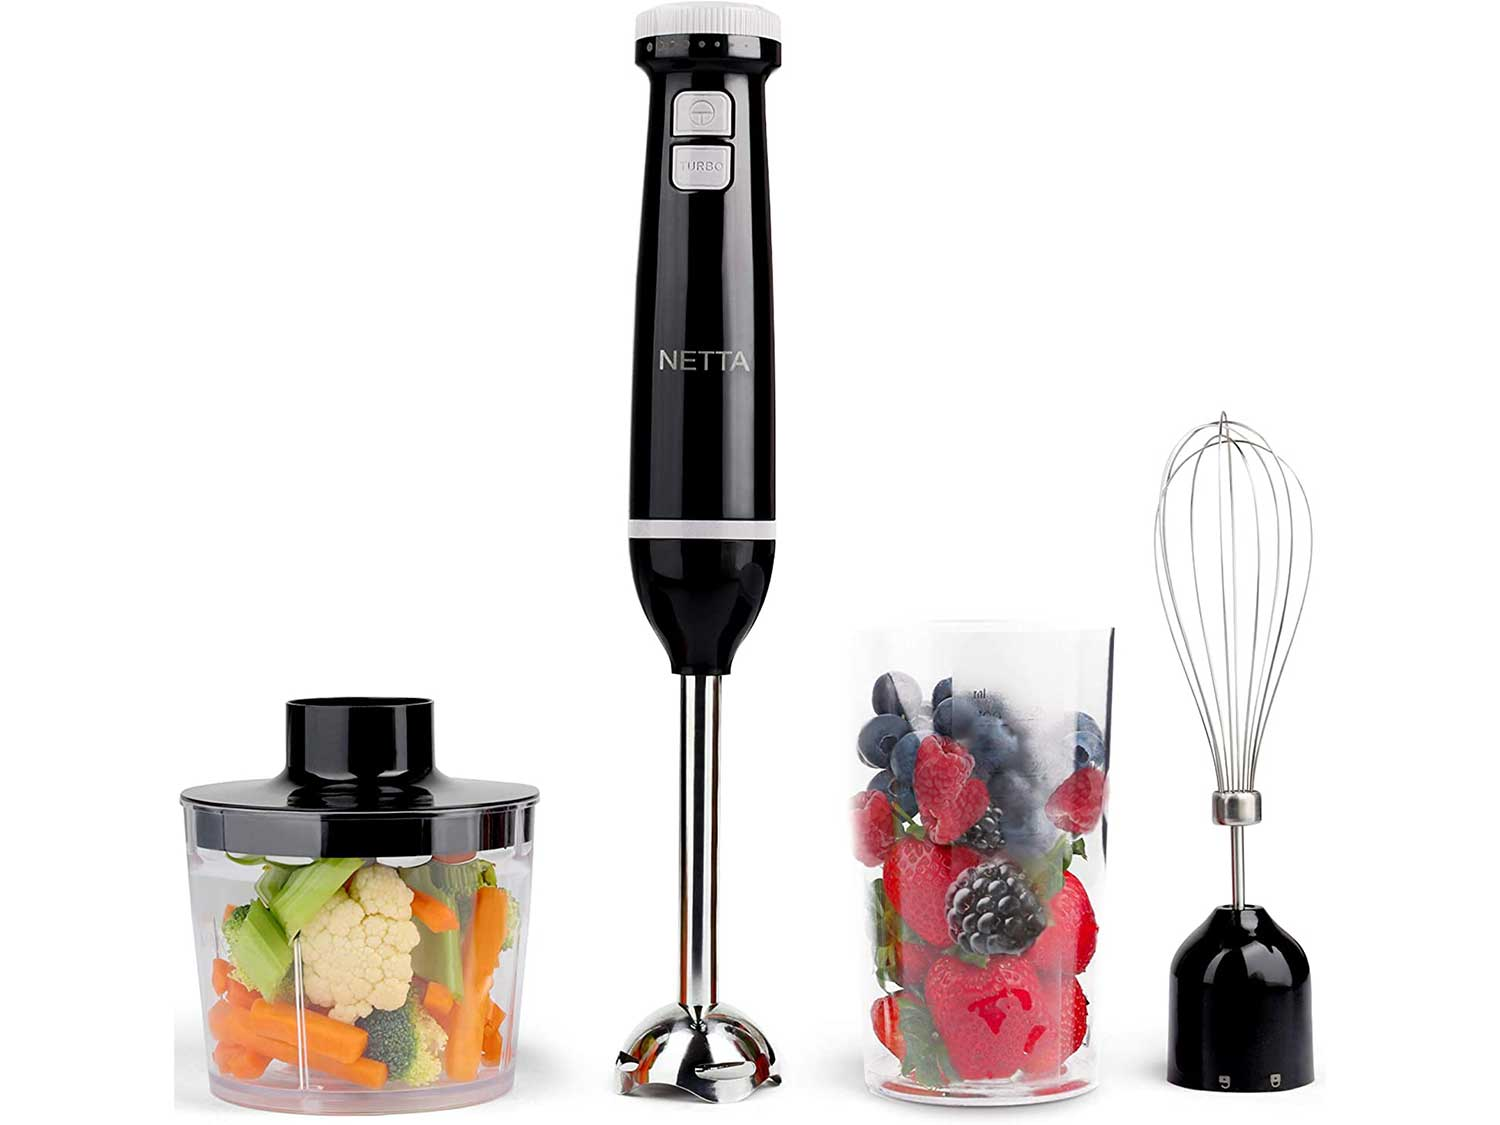 NETTA 3 in 1 Hand Blender, Whisk and Mini Chopper with 700ml Beaker - Powerful 600W - Electric Whisk, Immersion Mixer, 500ml Chopper Bowl - Stainless Steel Blades - BPA Free